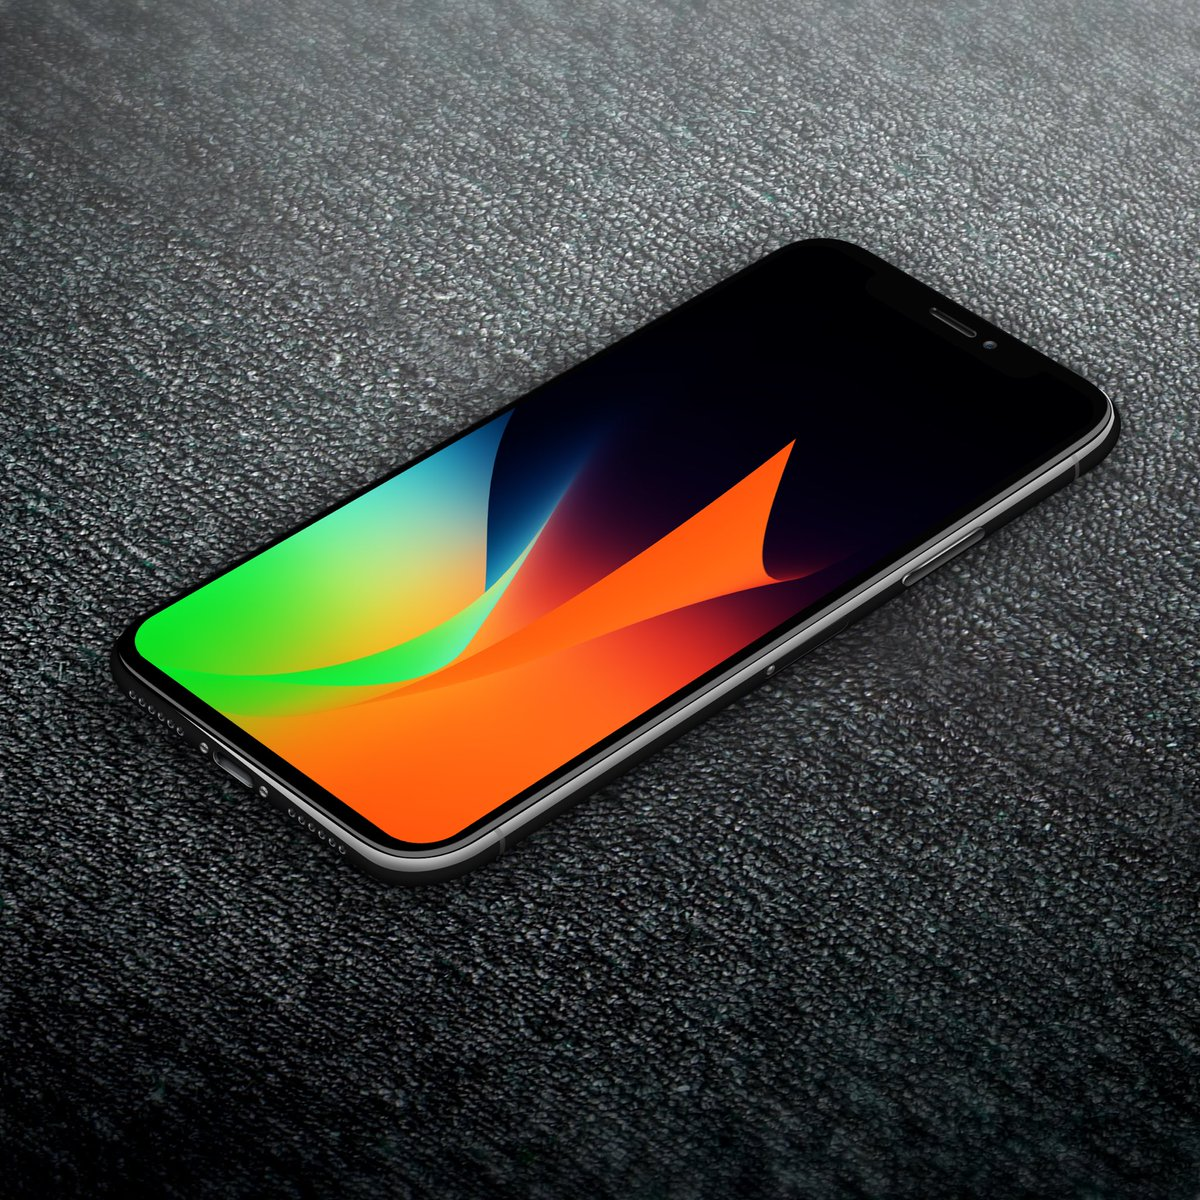 Ongliong On Twitter Wallpapers Homescreen Lockscreen Wallpaper Iphone11promax Iphonexr Iphonexs Iphone11 Iphone Ongliong11 Wallpaper Https T Co V5wwtggwmj Https T Co N6tqxninay